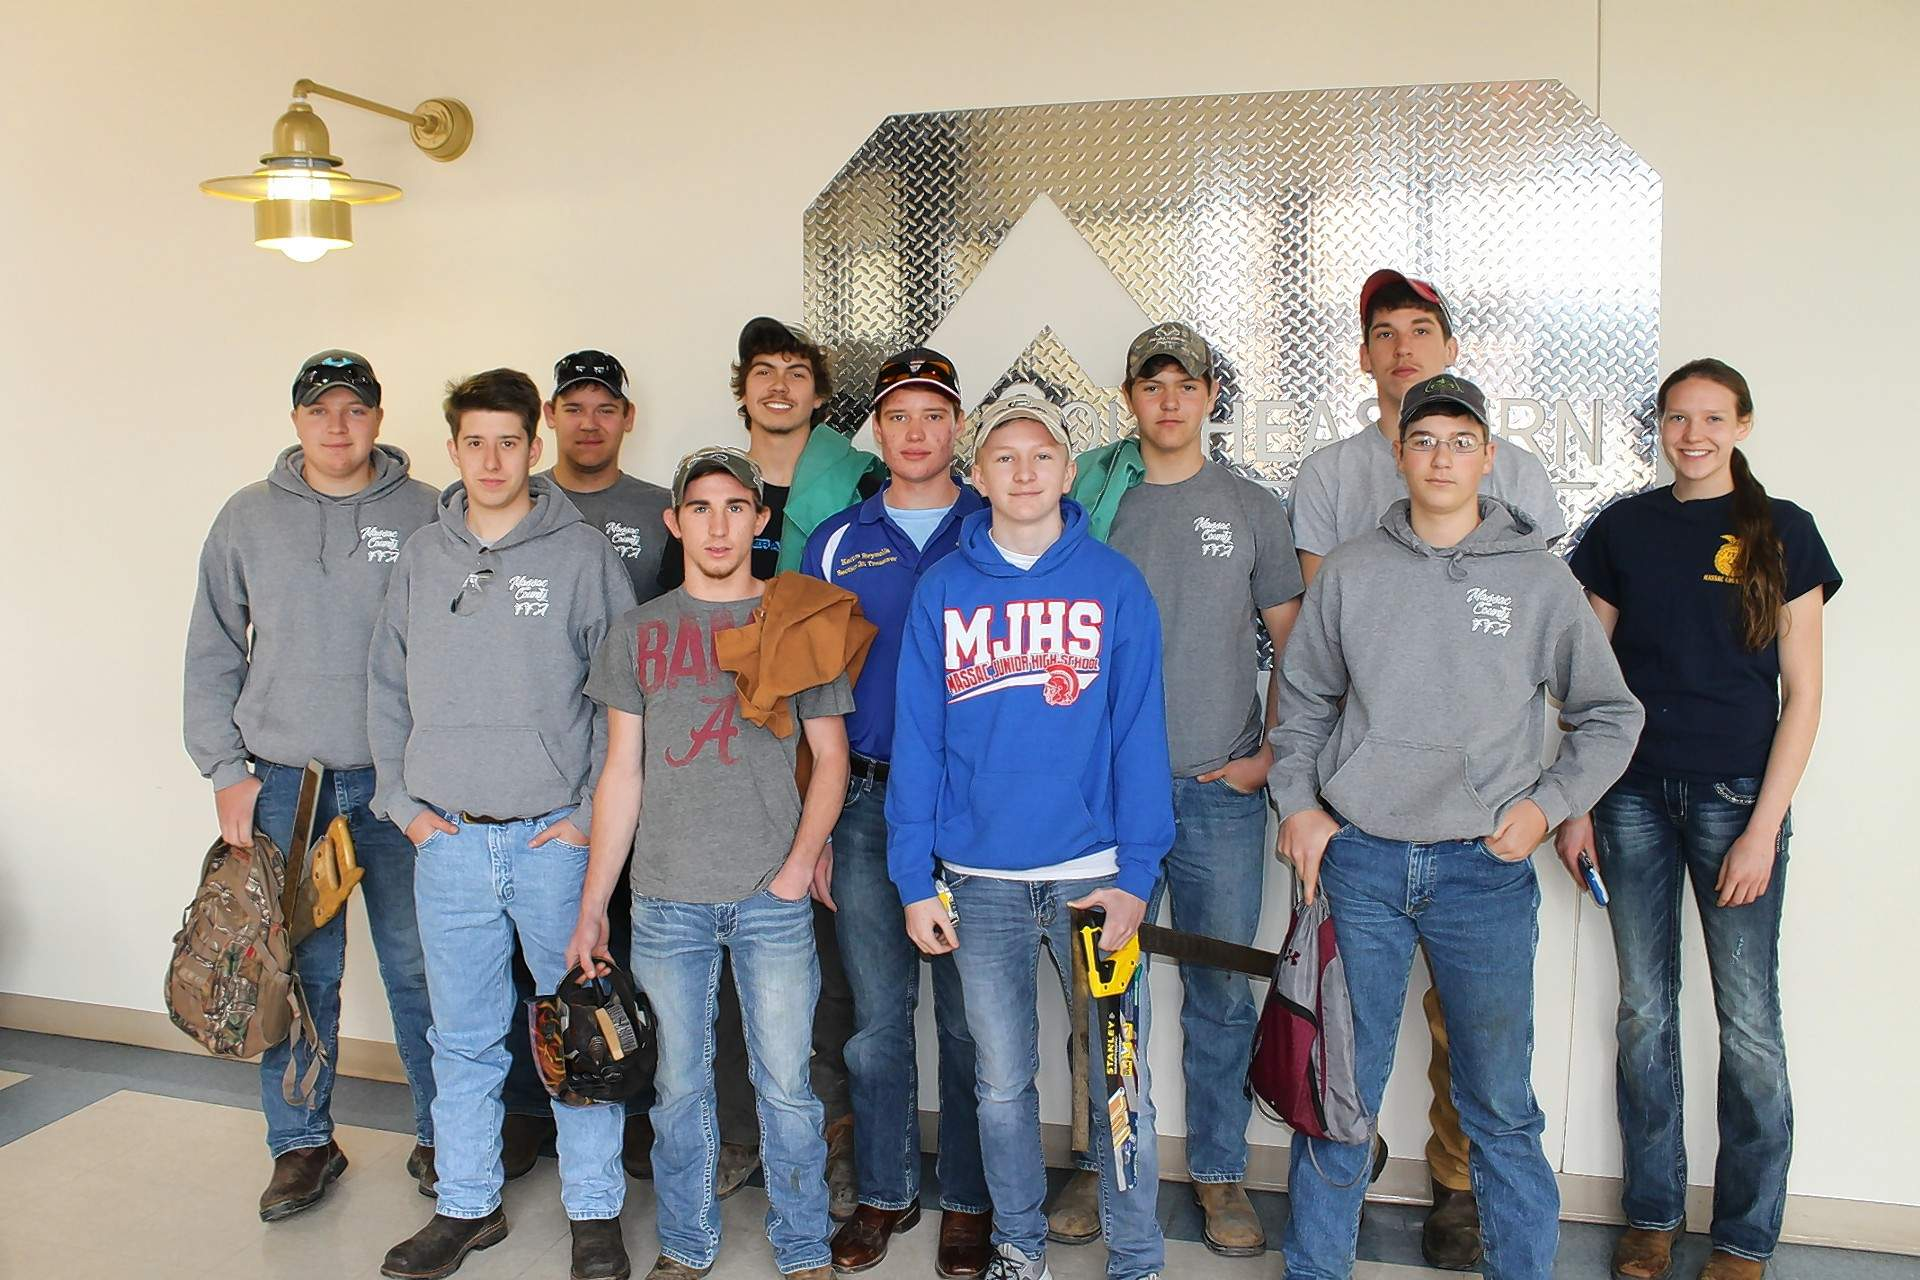 Massac County High School's FFA Chapter won first place team overall at the 2018 FFA Section 25 Ag Mechanics Competition at Southeastern Illinois College. Pictured are (not in order): Kyle Adkins, Garret Franklin, Eli Henry, Austin Korte, Jakob Korte, Jessie Lewis, Wyatt Obermark, Keeton Reynolds, Shorty Shin, Ben Travis and Josh Wrye.